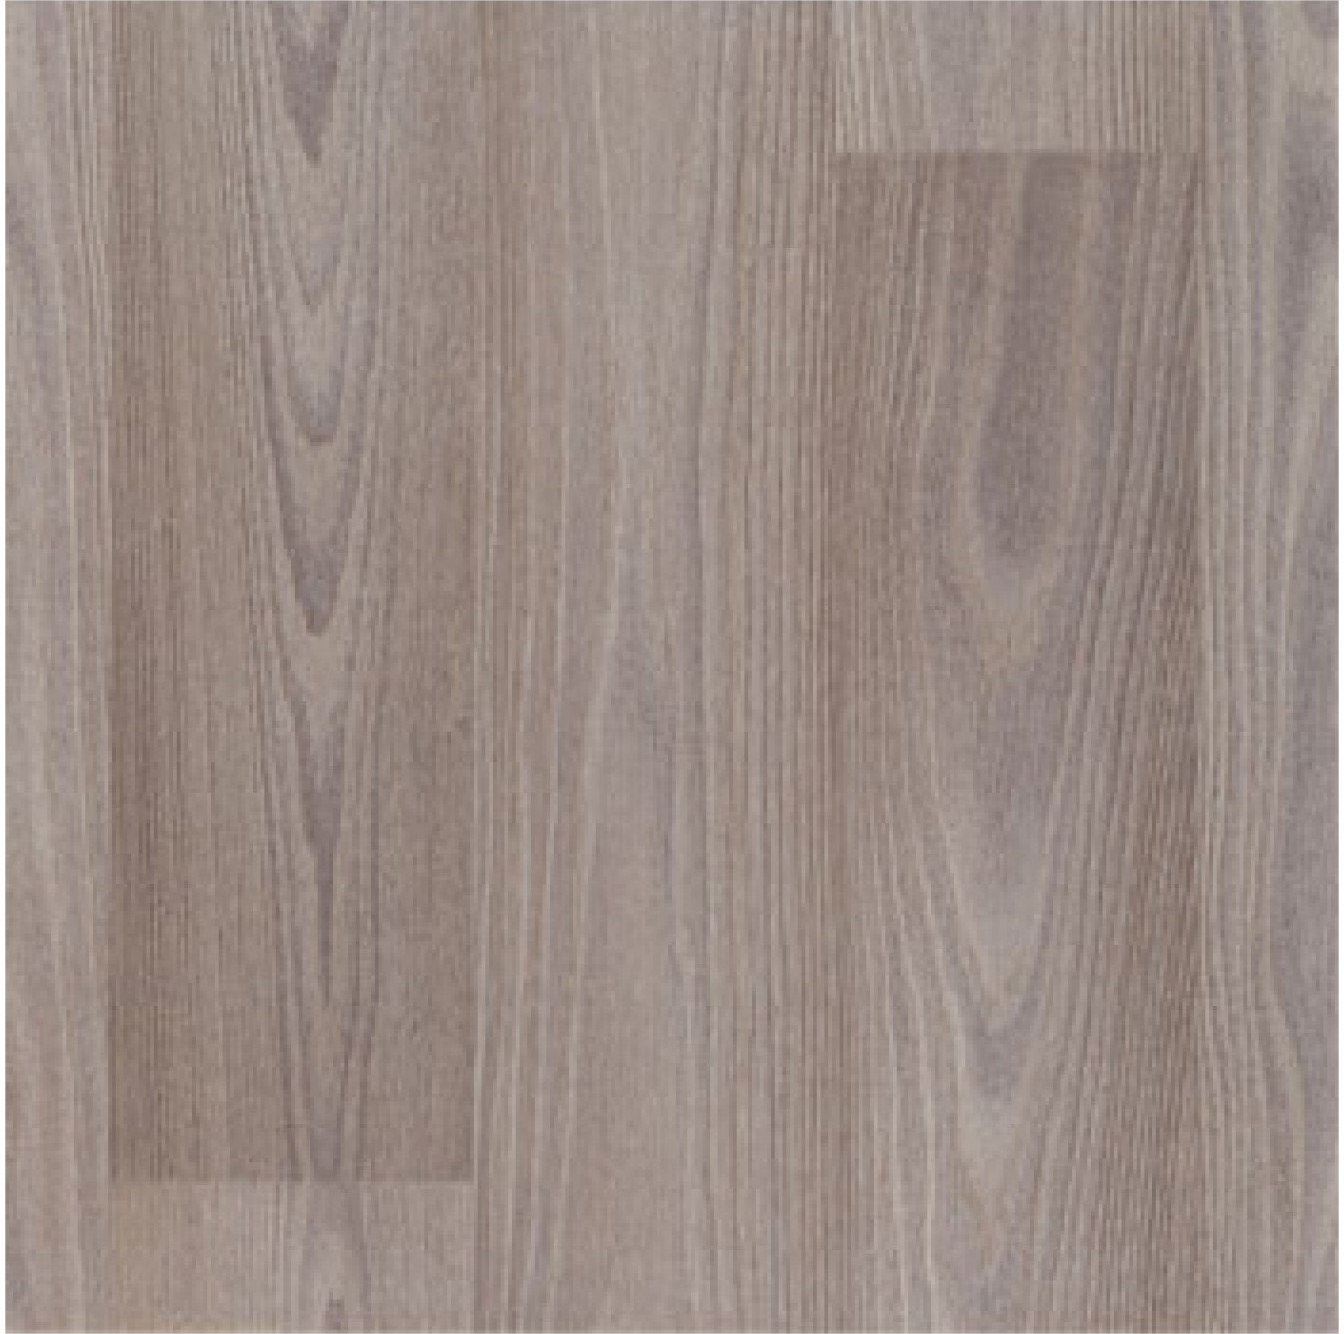 Vinyylimatto Gerflor Texline HQR Fairway Cloud leveys 4 m